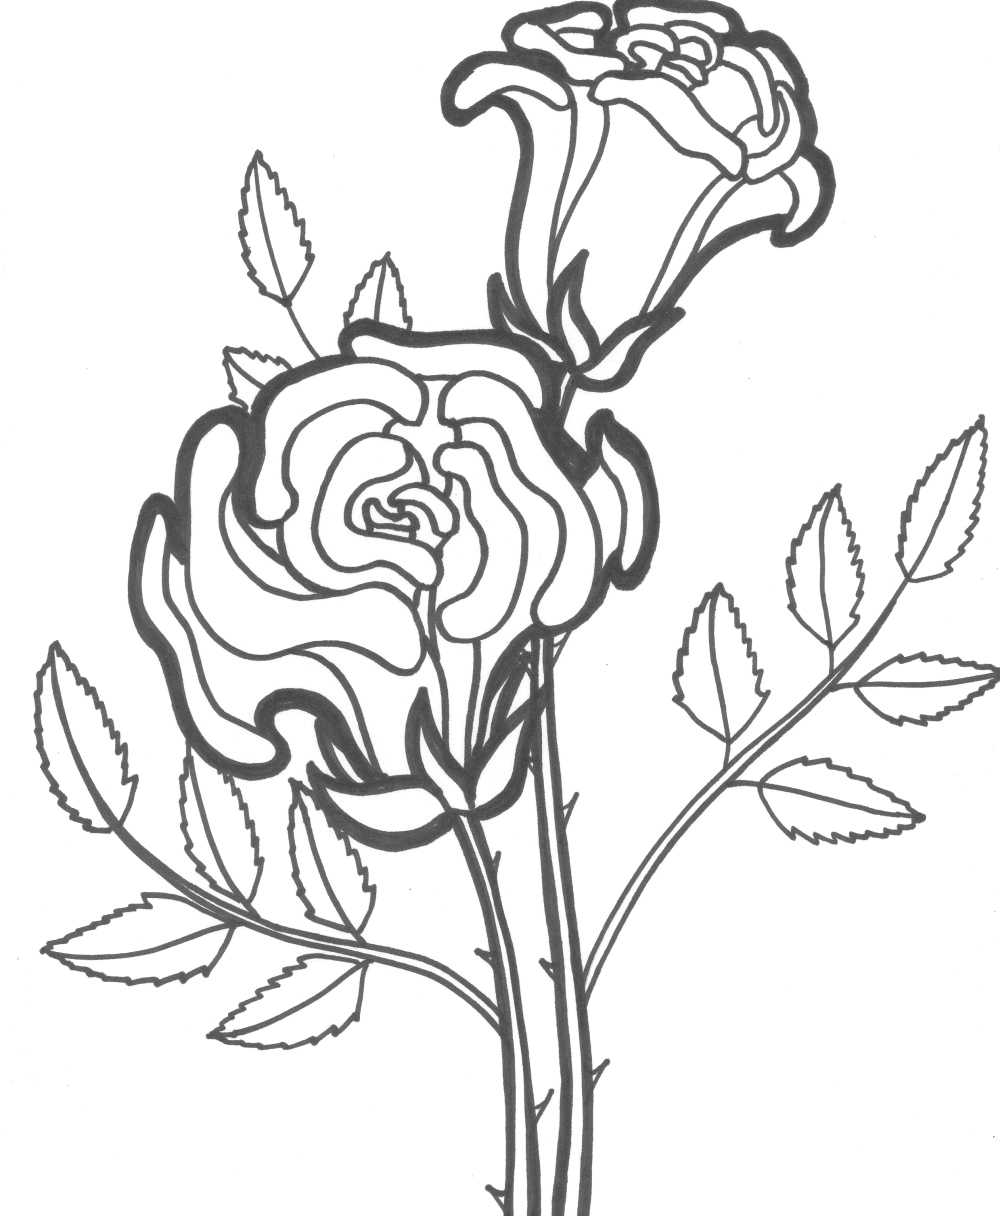 picture of a rose to color rose coloring pages with subtle shapes and forms can be of a to color rose picture